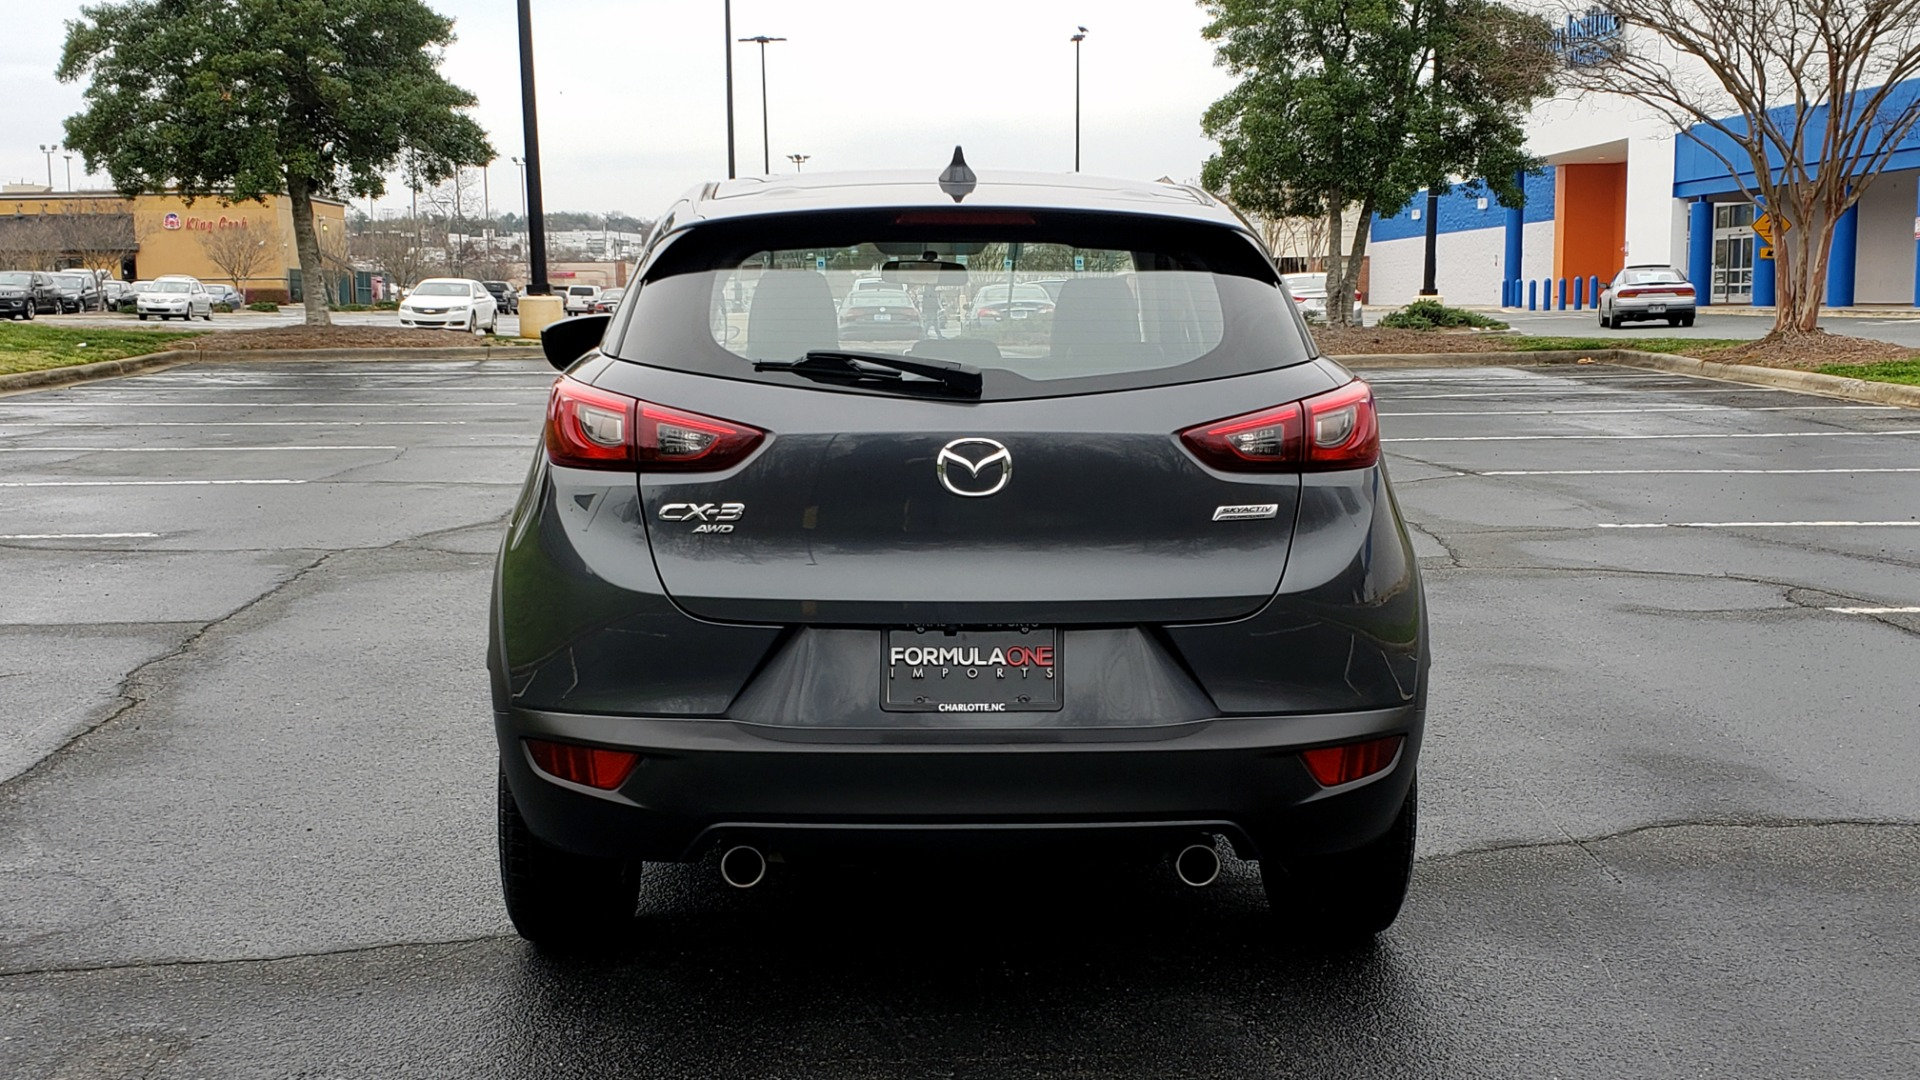 Used 2016 Mazda CX-3 TOURING AWD / 4-CYL / 6-SPD AUTO / NAV / HTD STS / 7-INCH DISPLAY for sale Sold at Formula Imports in Charlotte NC 28227 19